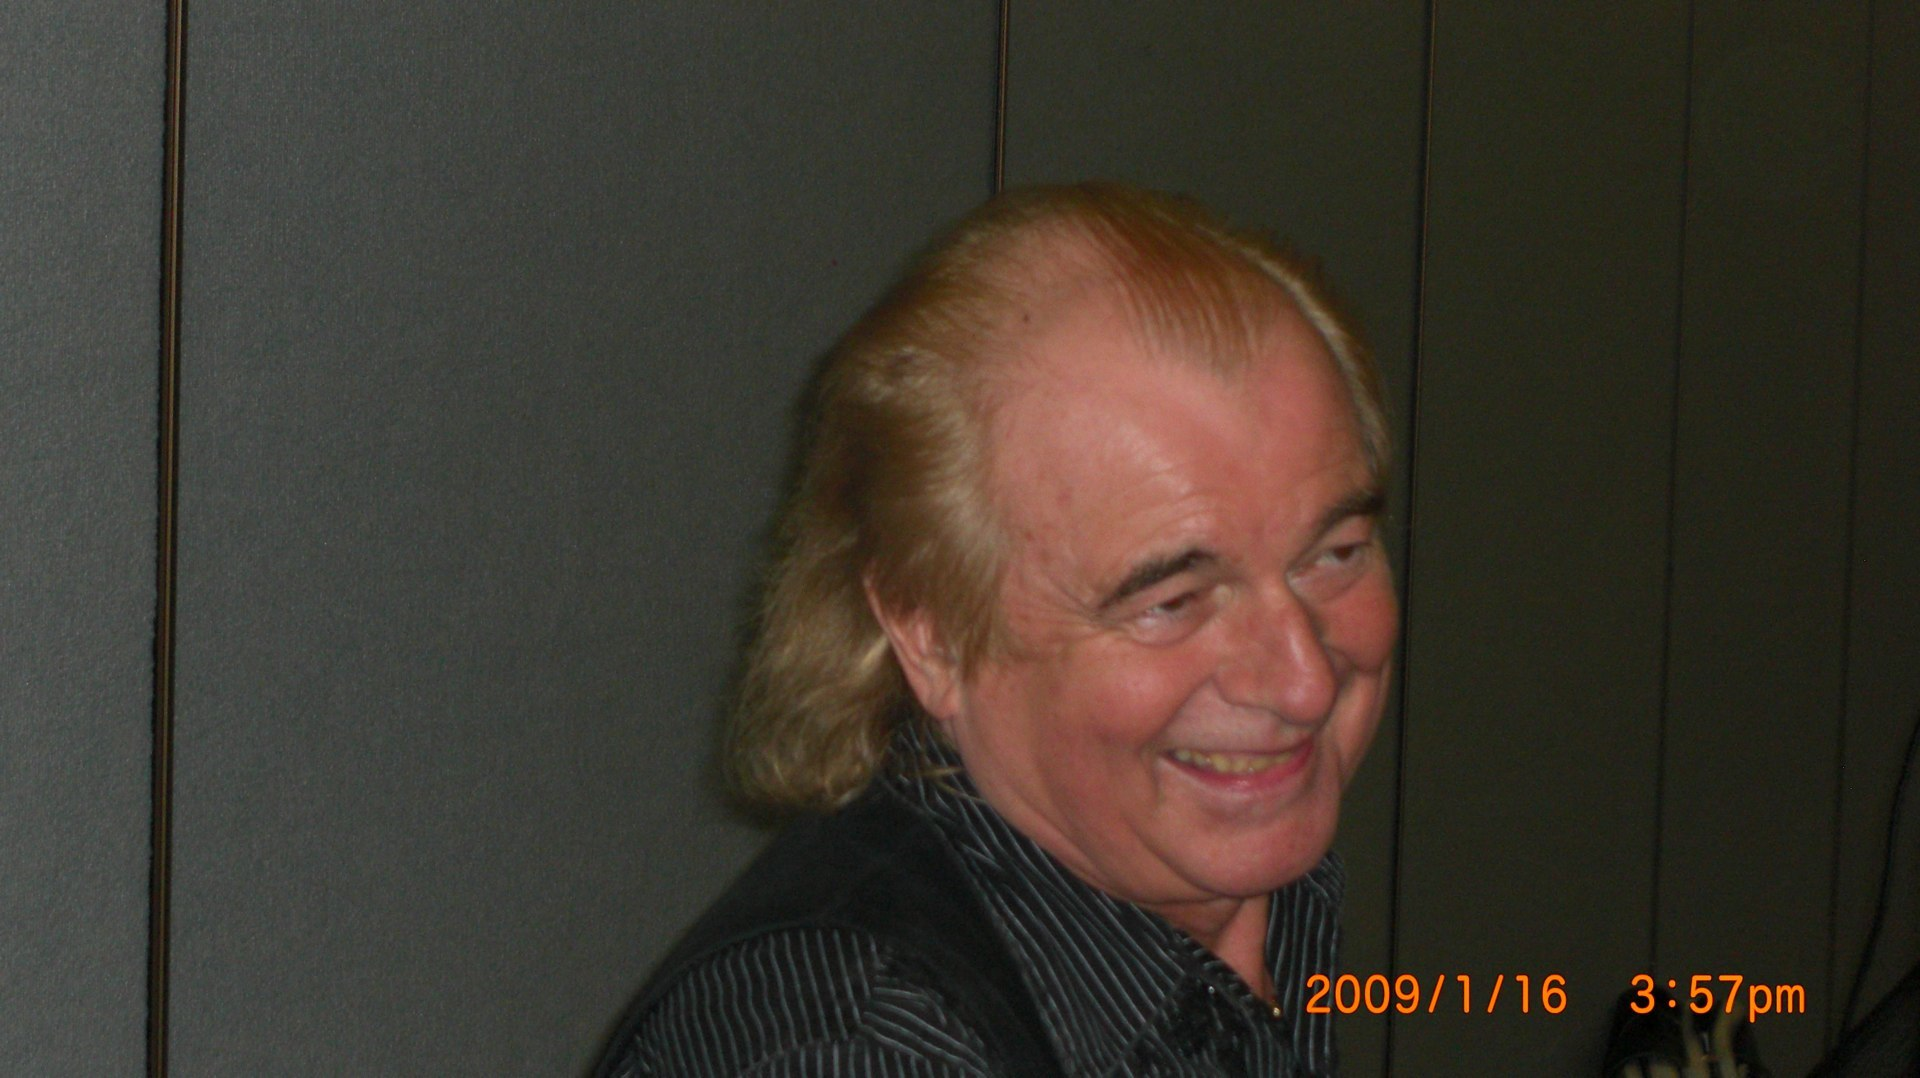 Alan White/Yes NAMM rehearsal 08